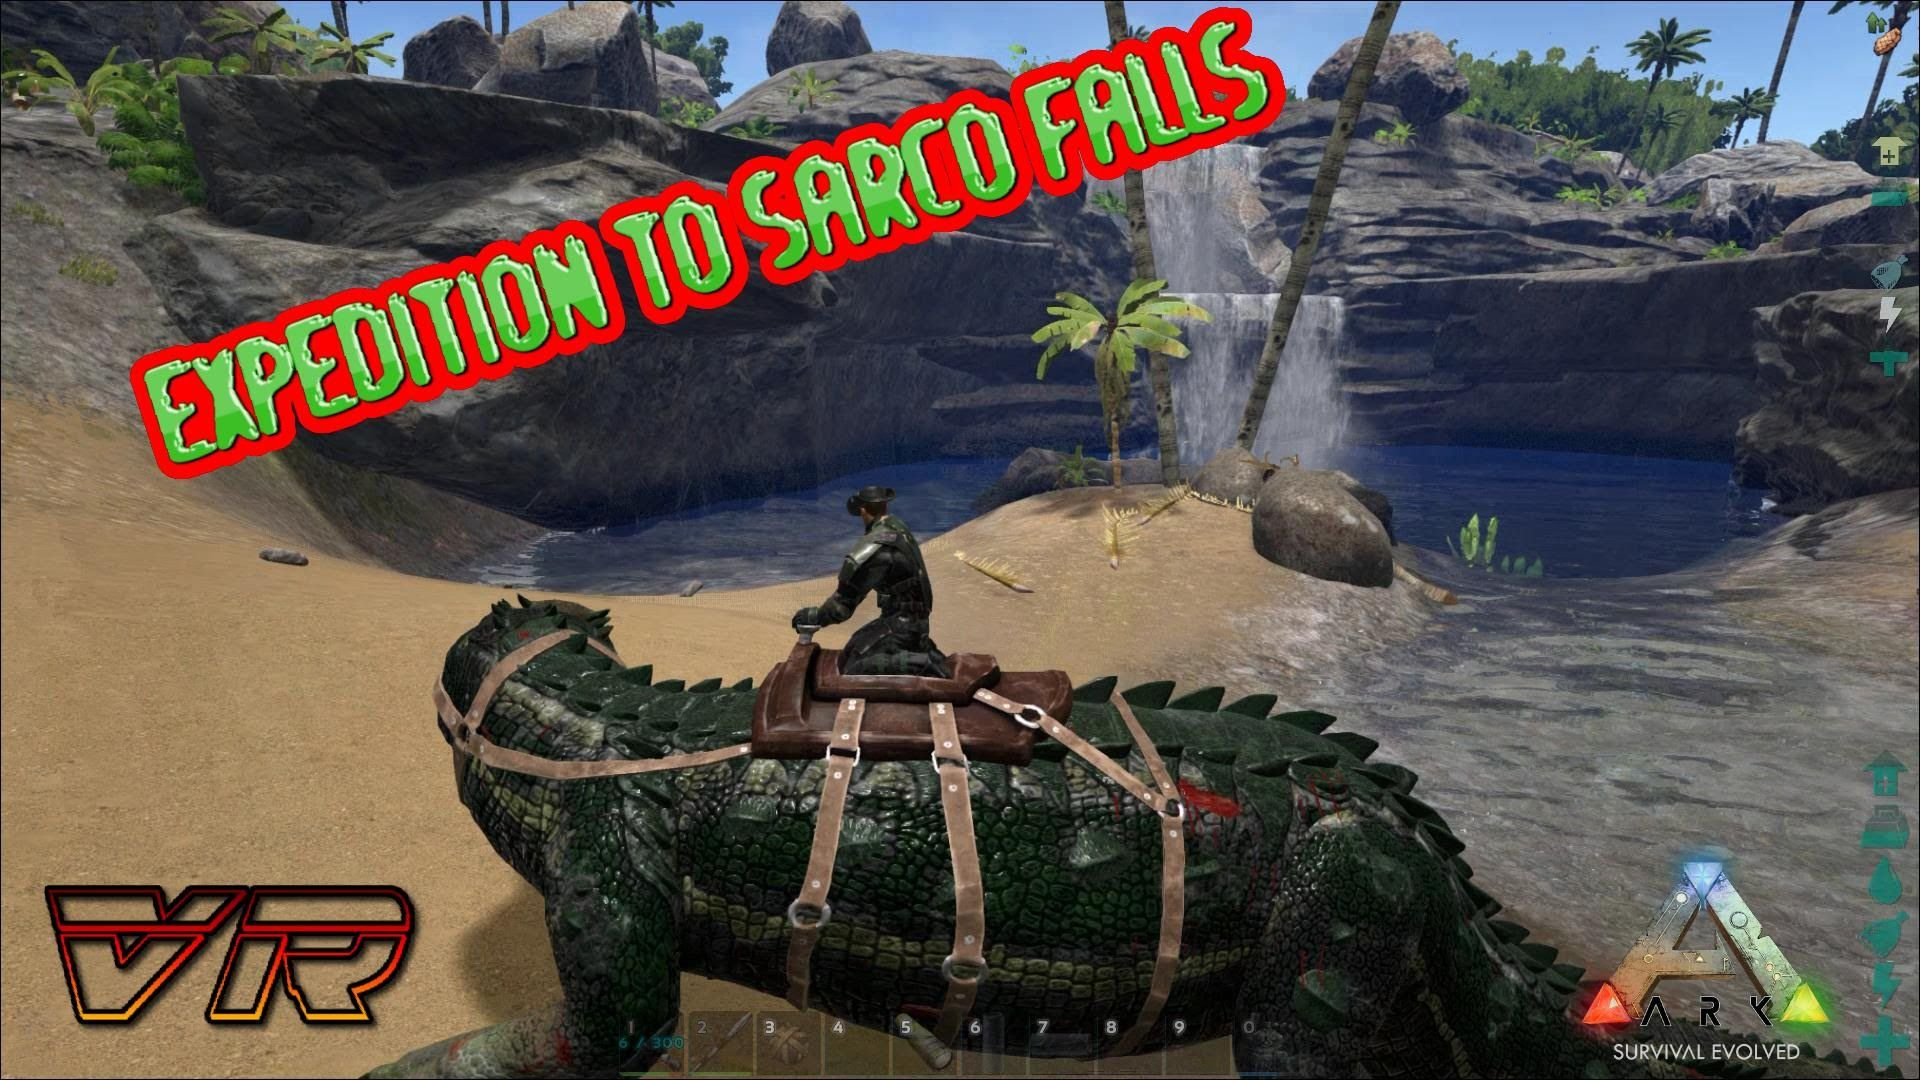 ARK: Survival Evolved [S2-Ep 8]: Expedition to Sarco Falls | ARK